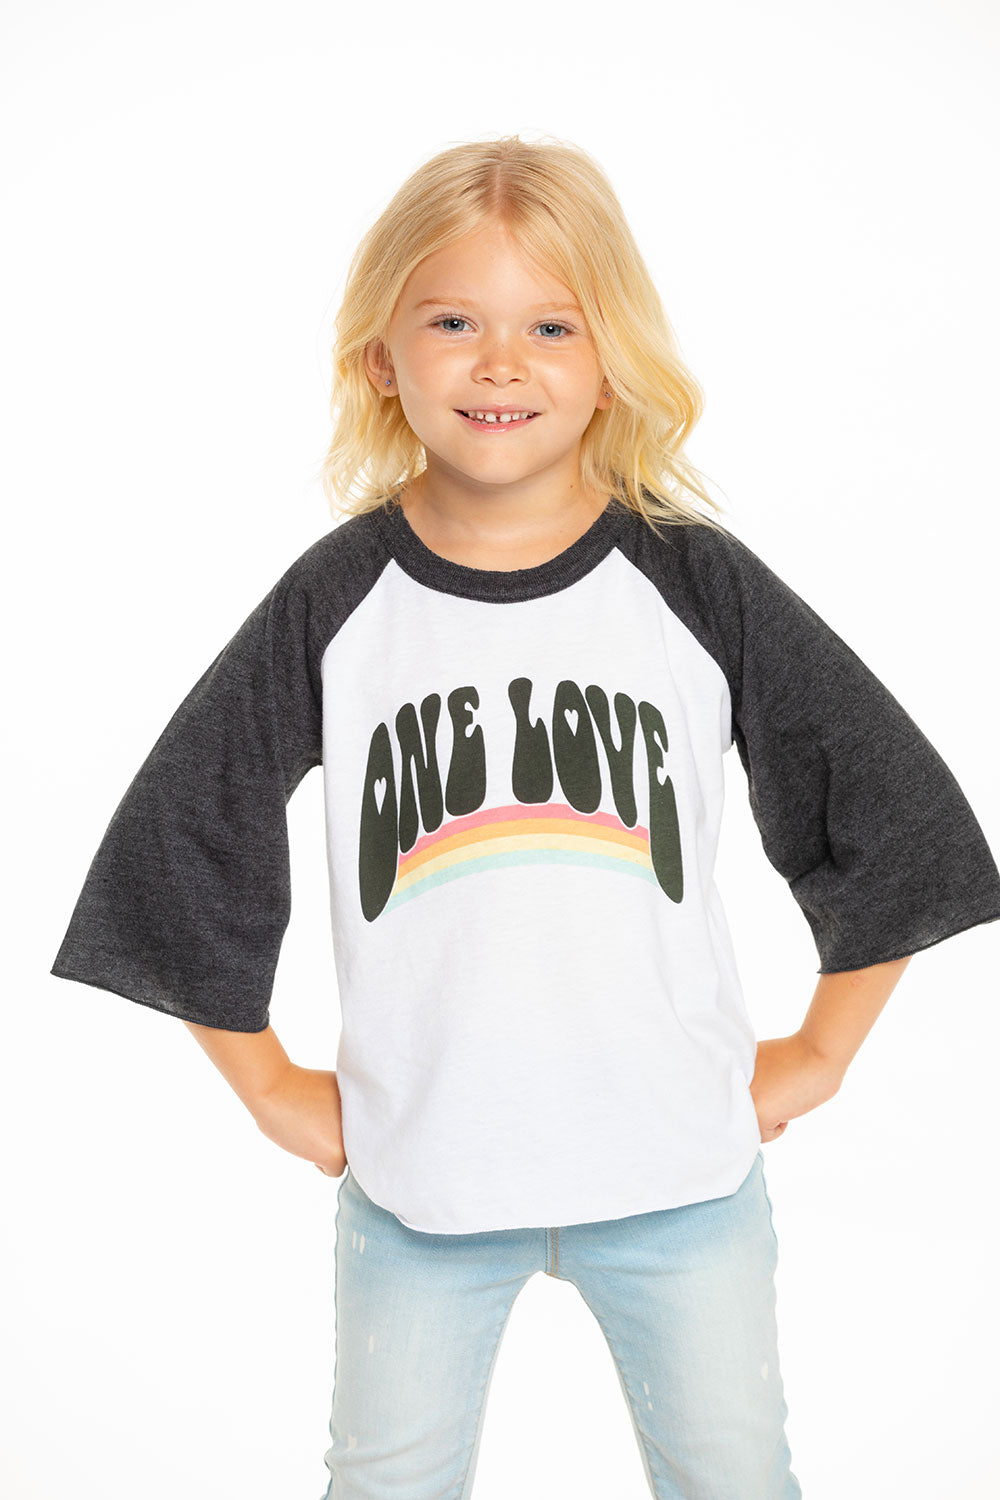 One Love Vintage Baseball Tee GIRLS chaserbrand4.myshopify.com